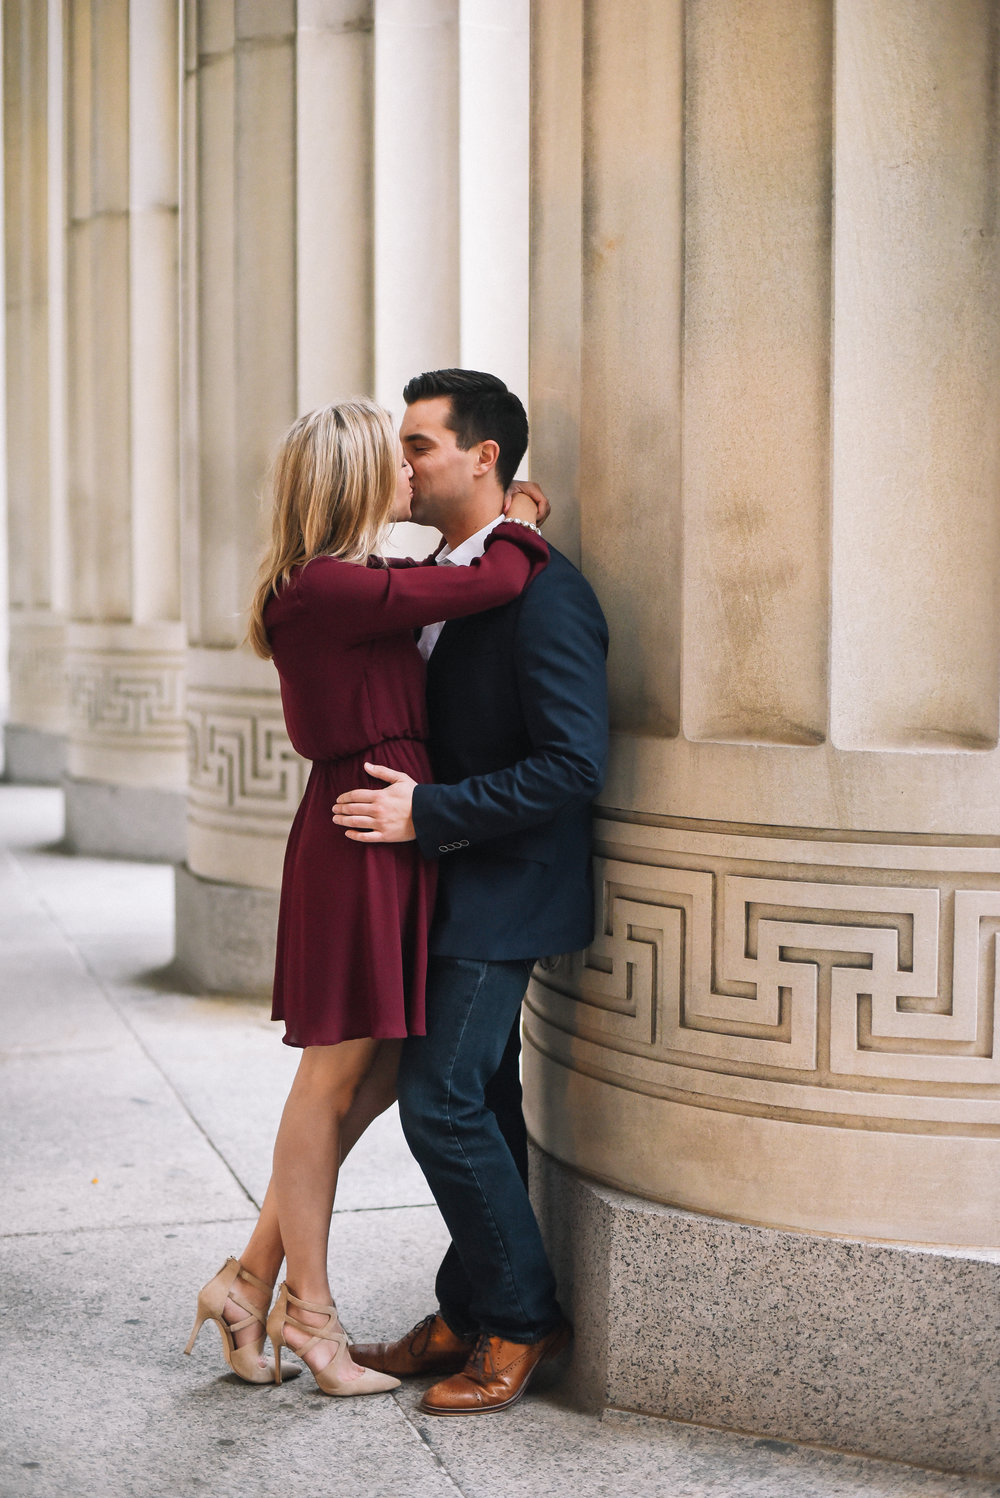 Downtown_Ann_Arbor_Arboretum_Engagement_Photos-17.jpg